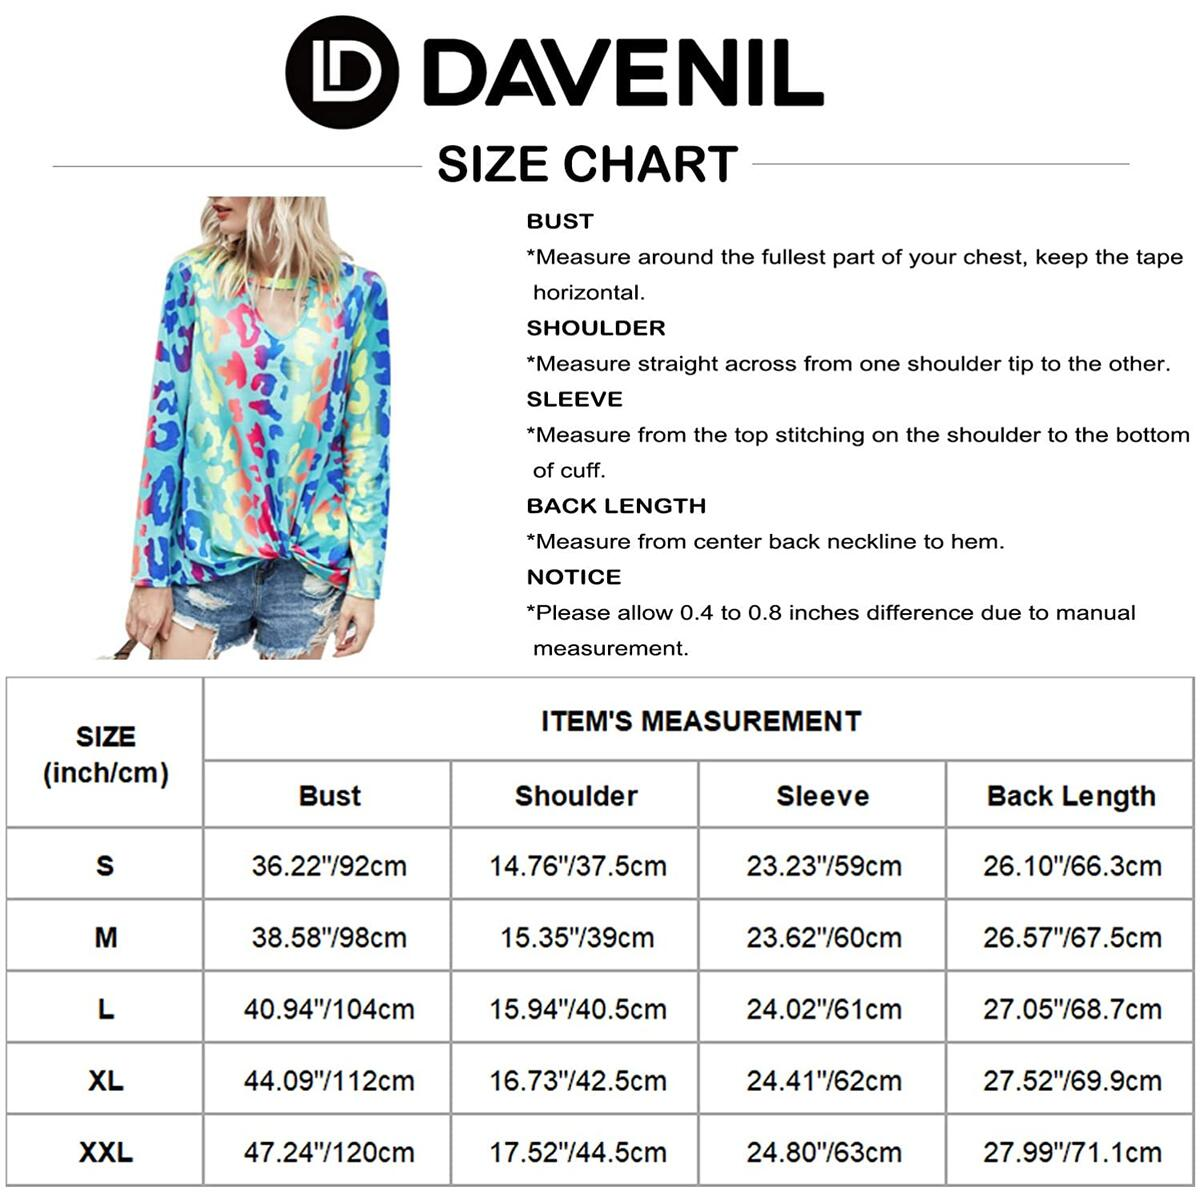 Davenil Women's Long Sleeve Tops V Neck Shirts Twist Knot Cutout Criss Cross Loose Fit Casual Tunic Tops